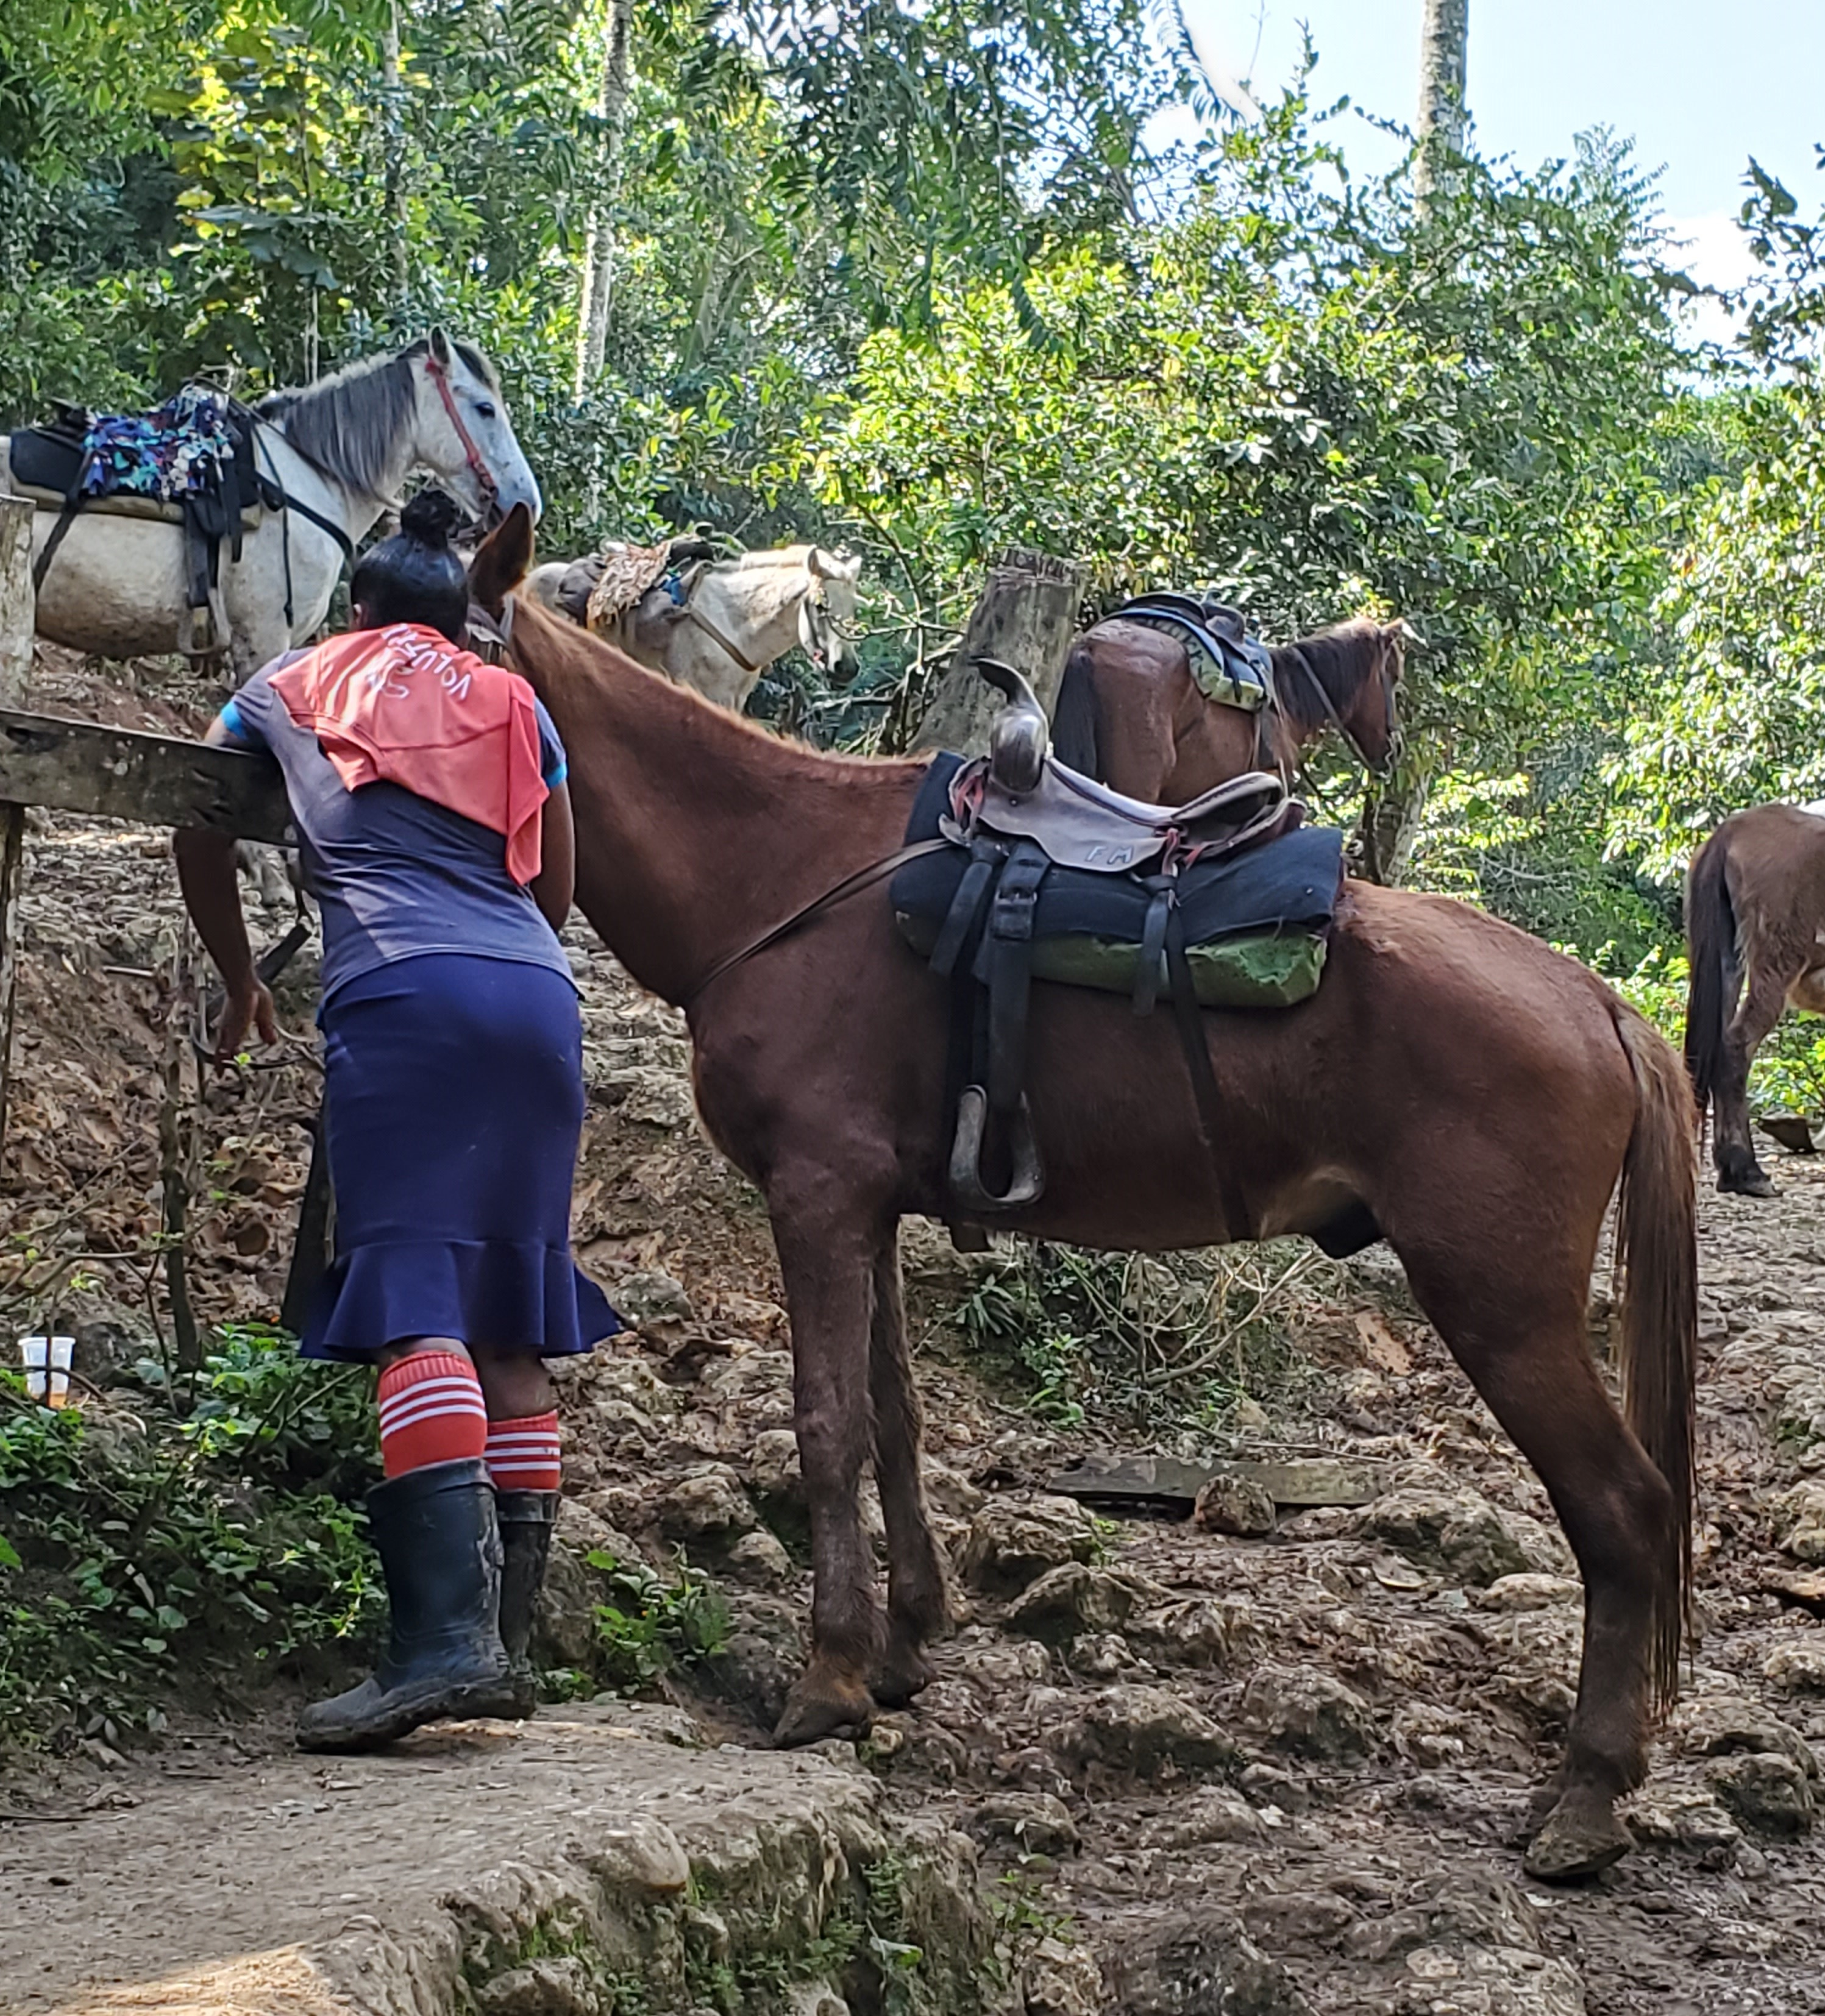 guide tying horse